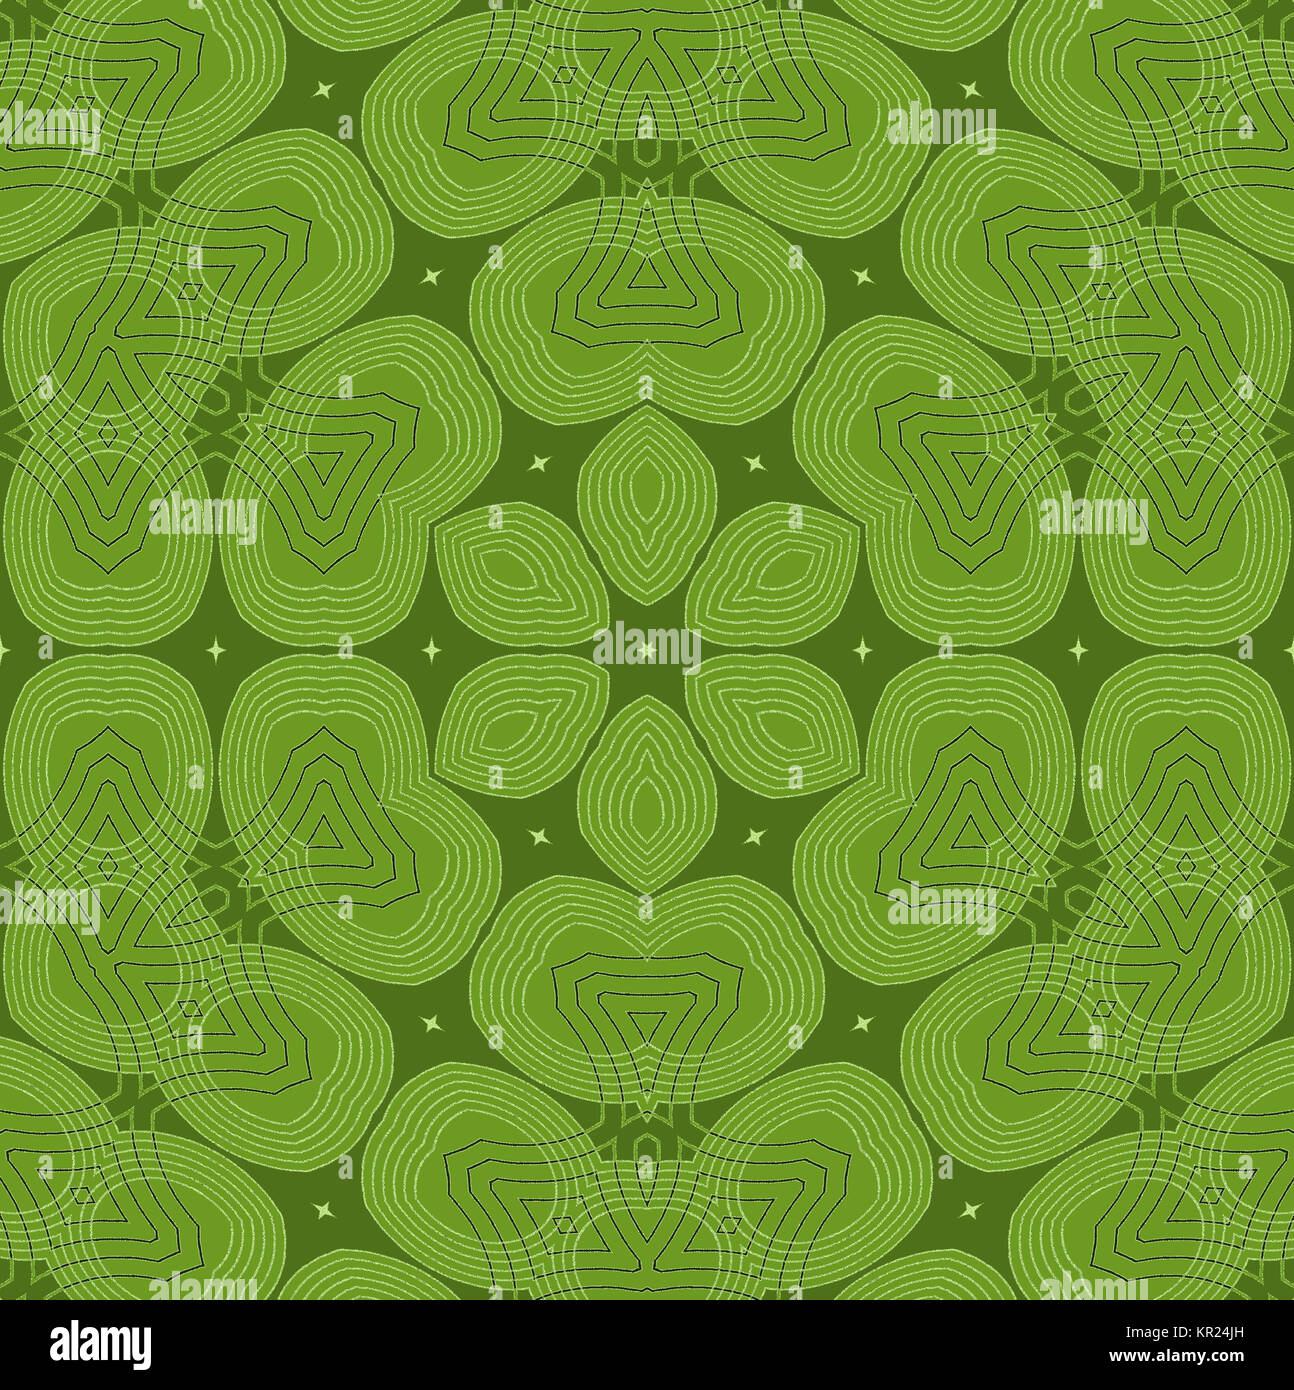 Abstract geometric plain background. Seamless ornament with light green elements on olive green with light outlines, - Stock Image